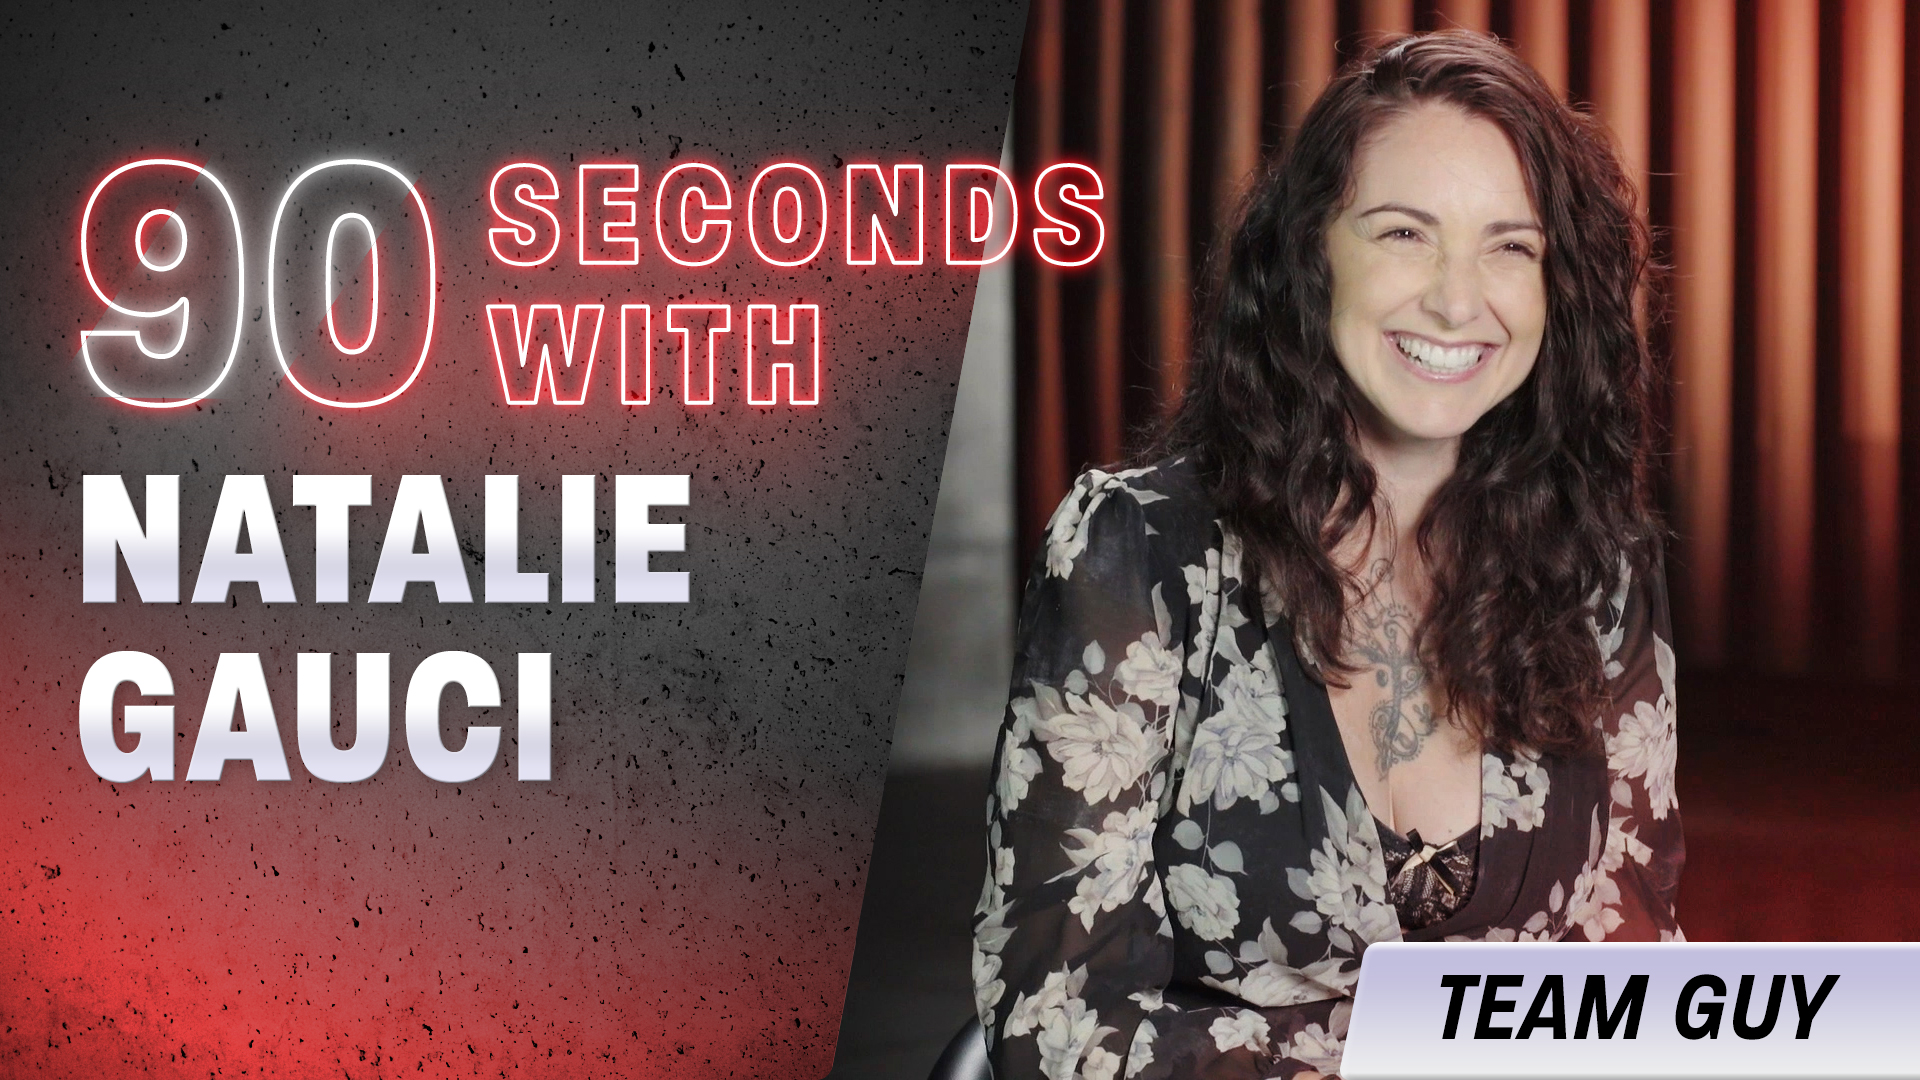 90 Seconds with Natalie Gauci